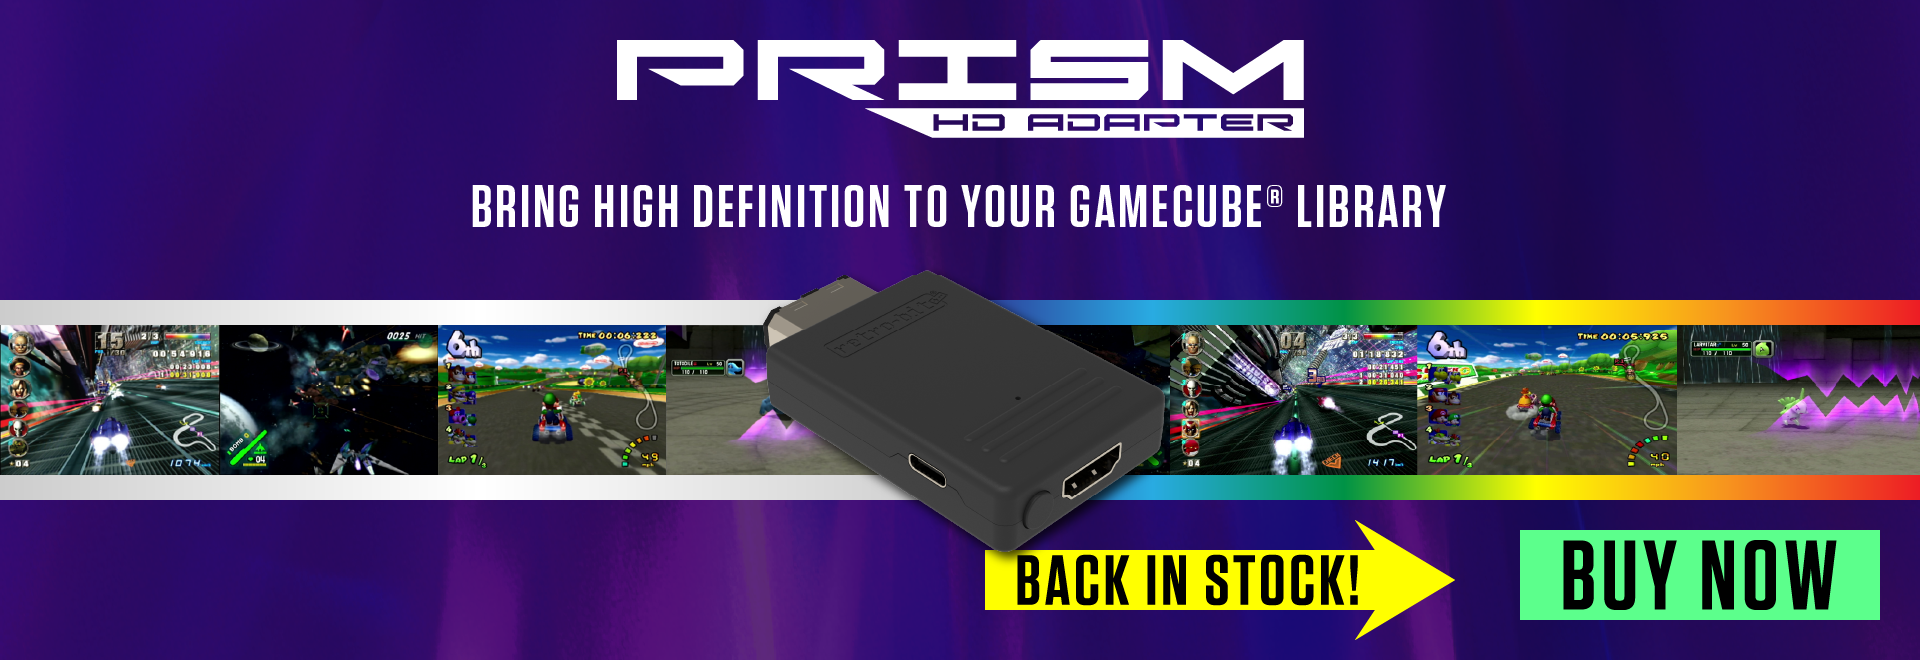 Retro-Bit Prism HD Adapter for GCN is back in stock!